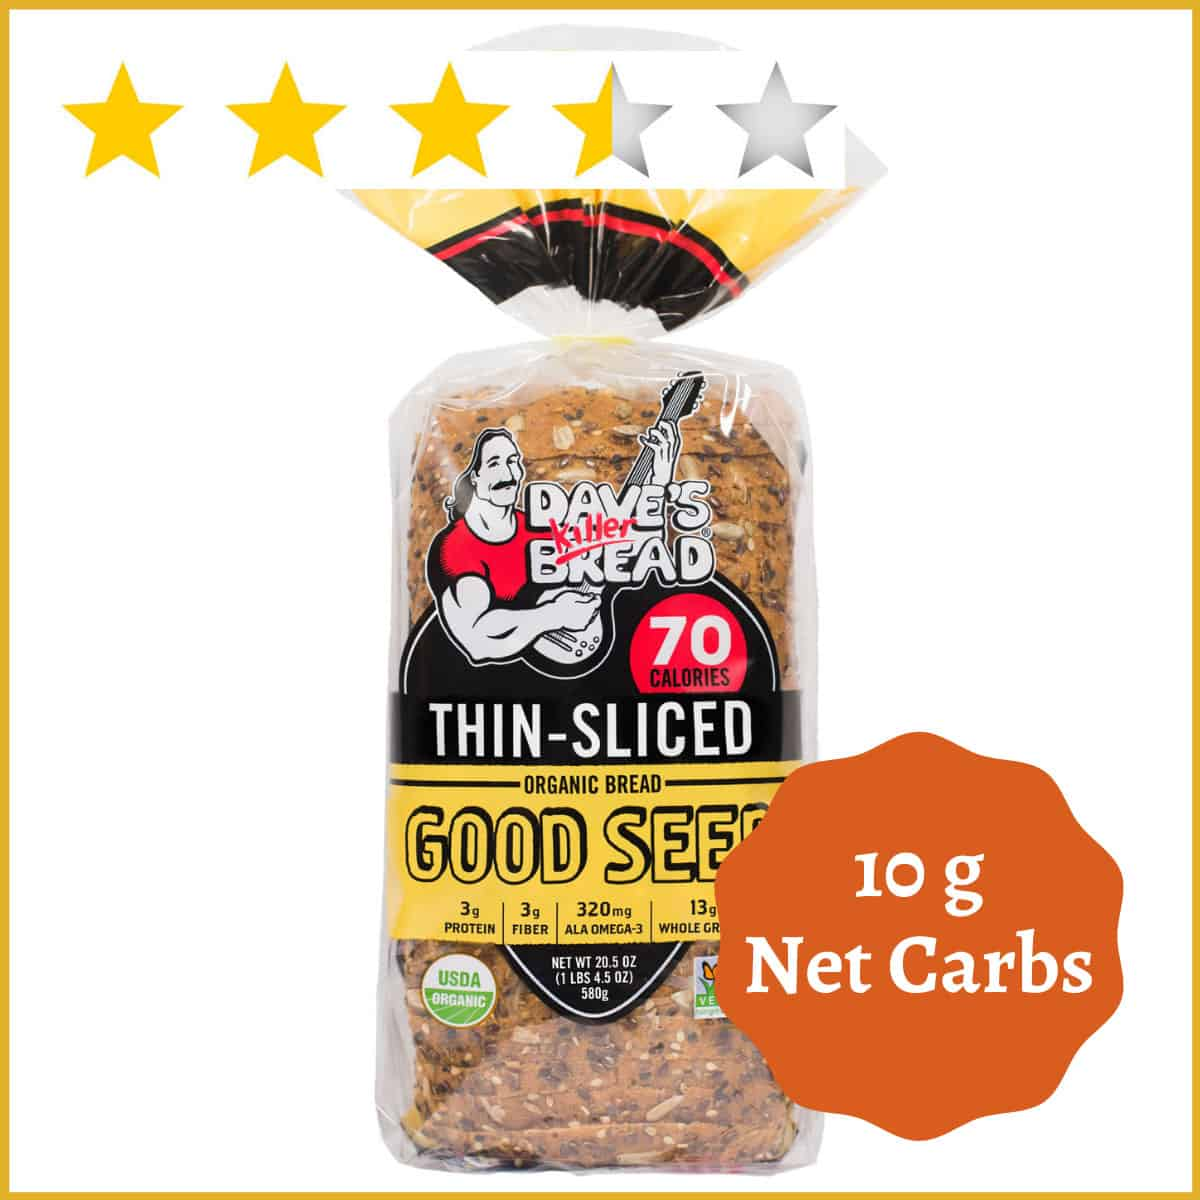 Dave's Killer Bread - Good Seed Thin-Sliced